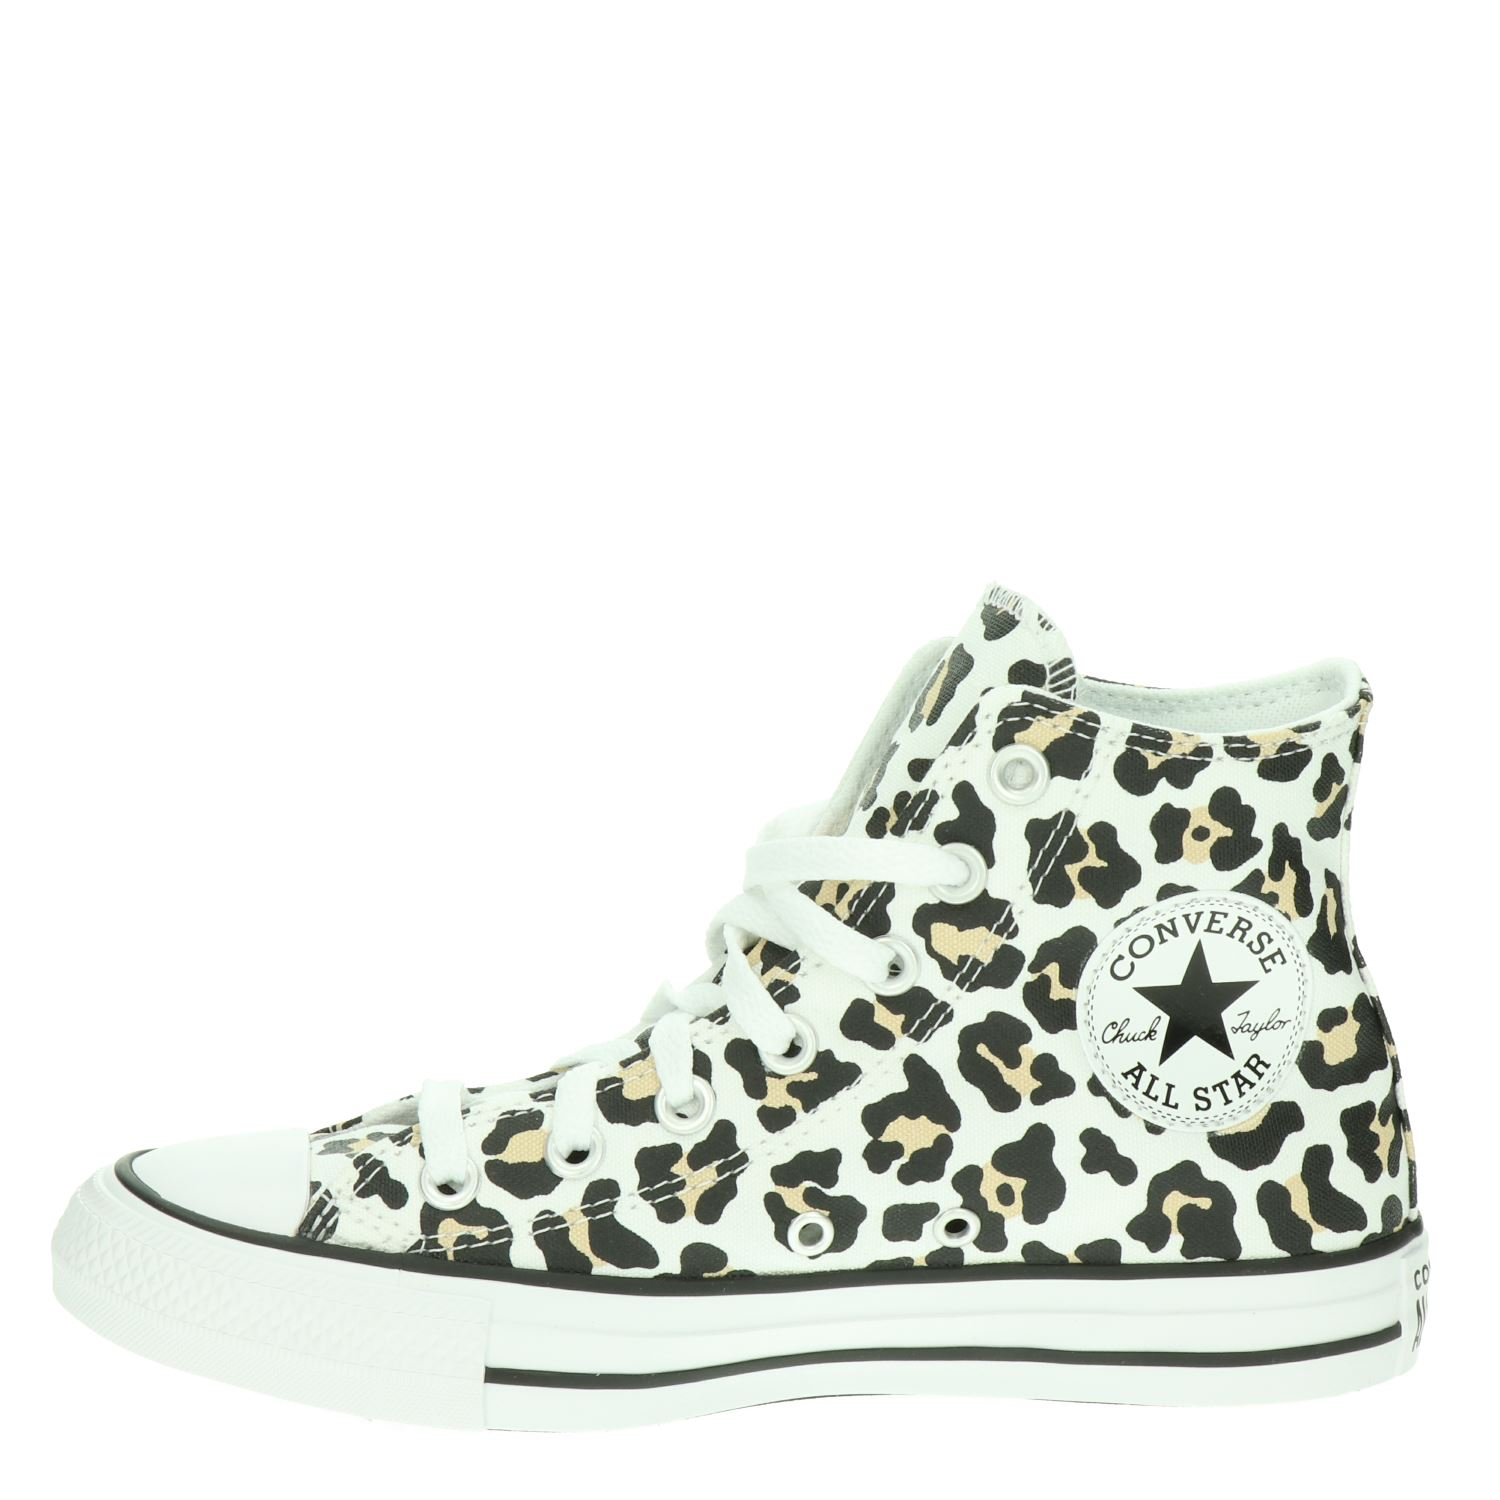 Converse Chuck All Star - Hoge sneakers voor dames - Bruin IGawo8G